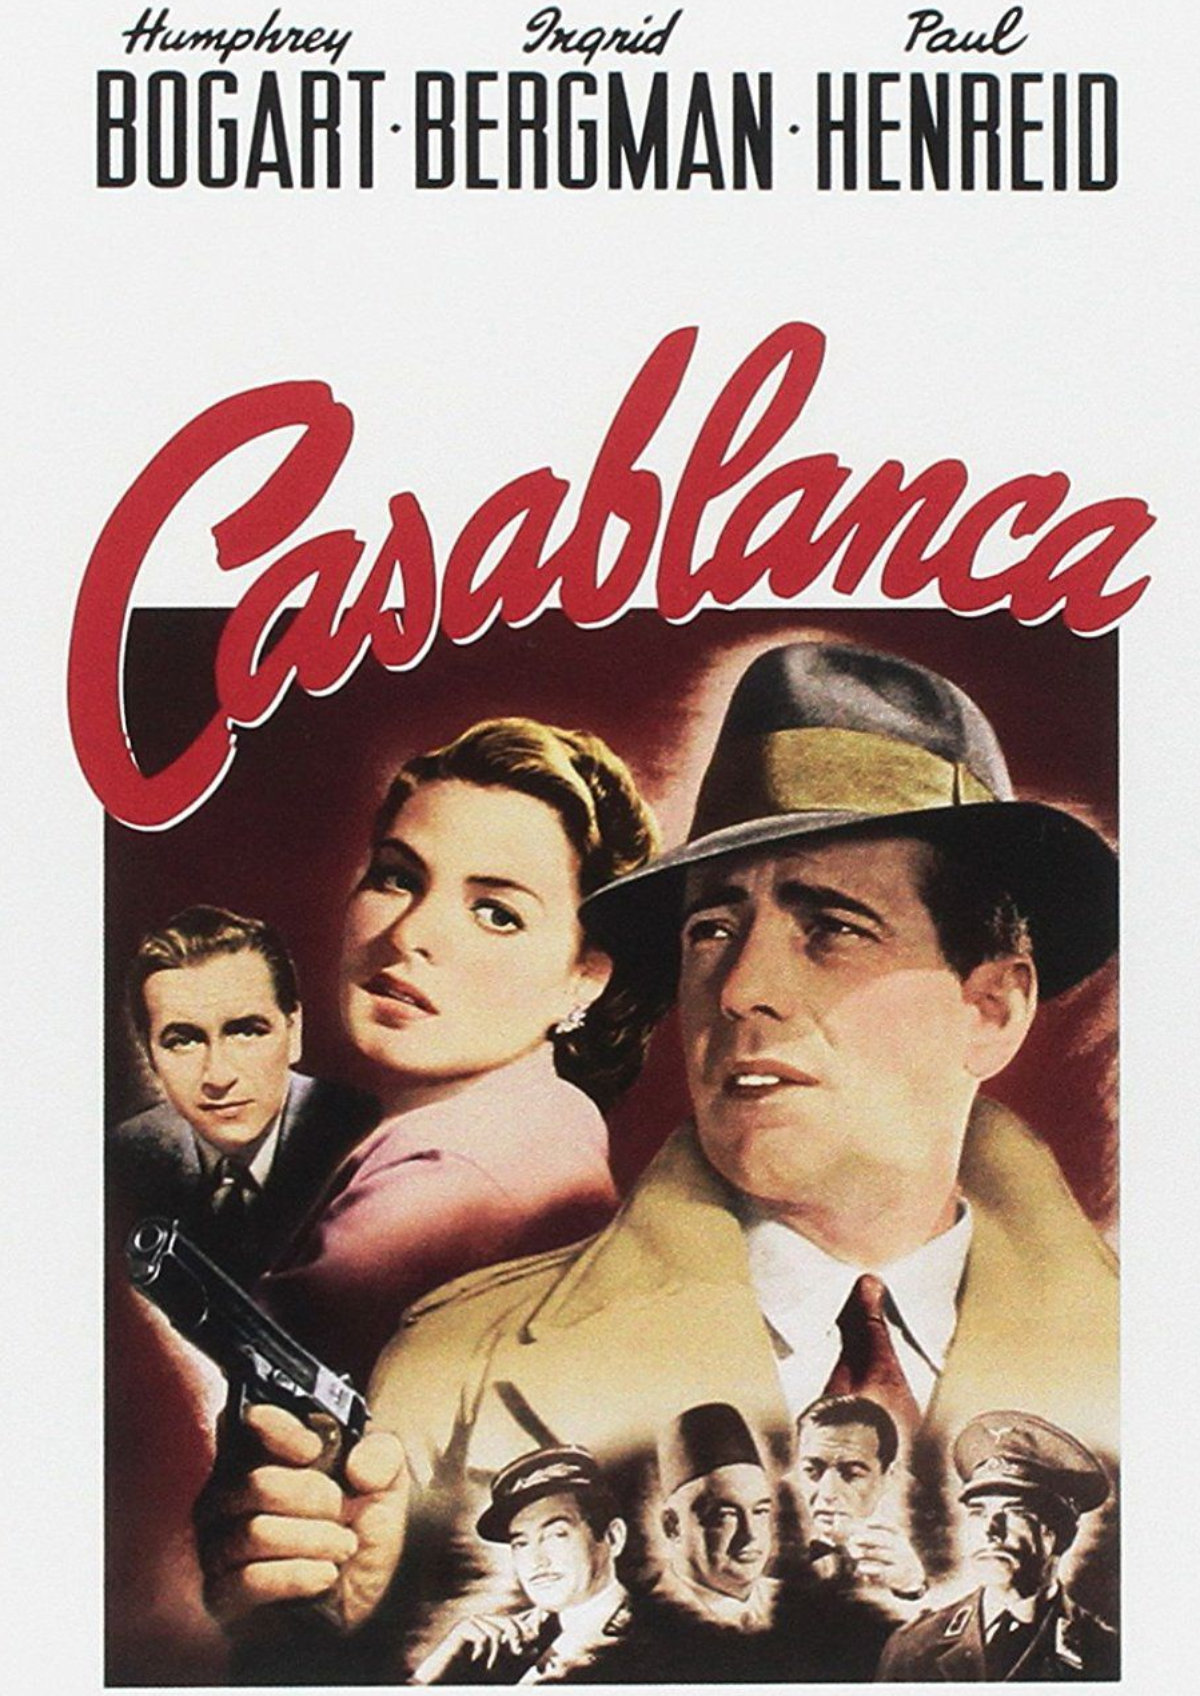 'Casablanca' movie poster